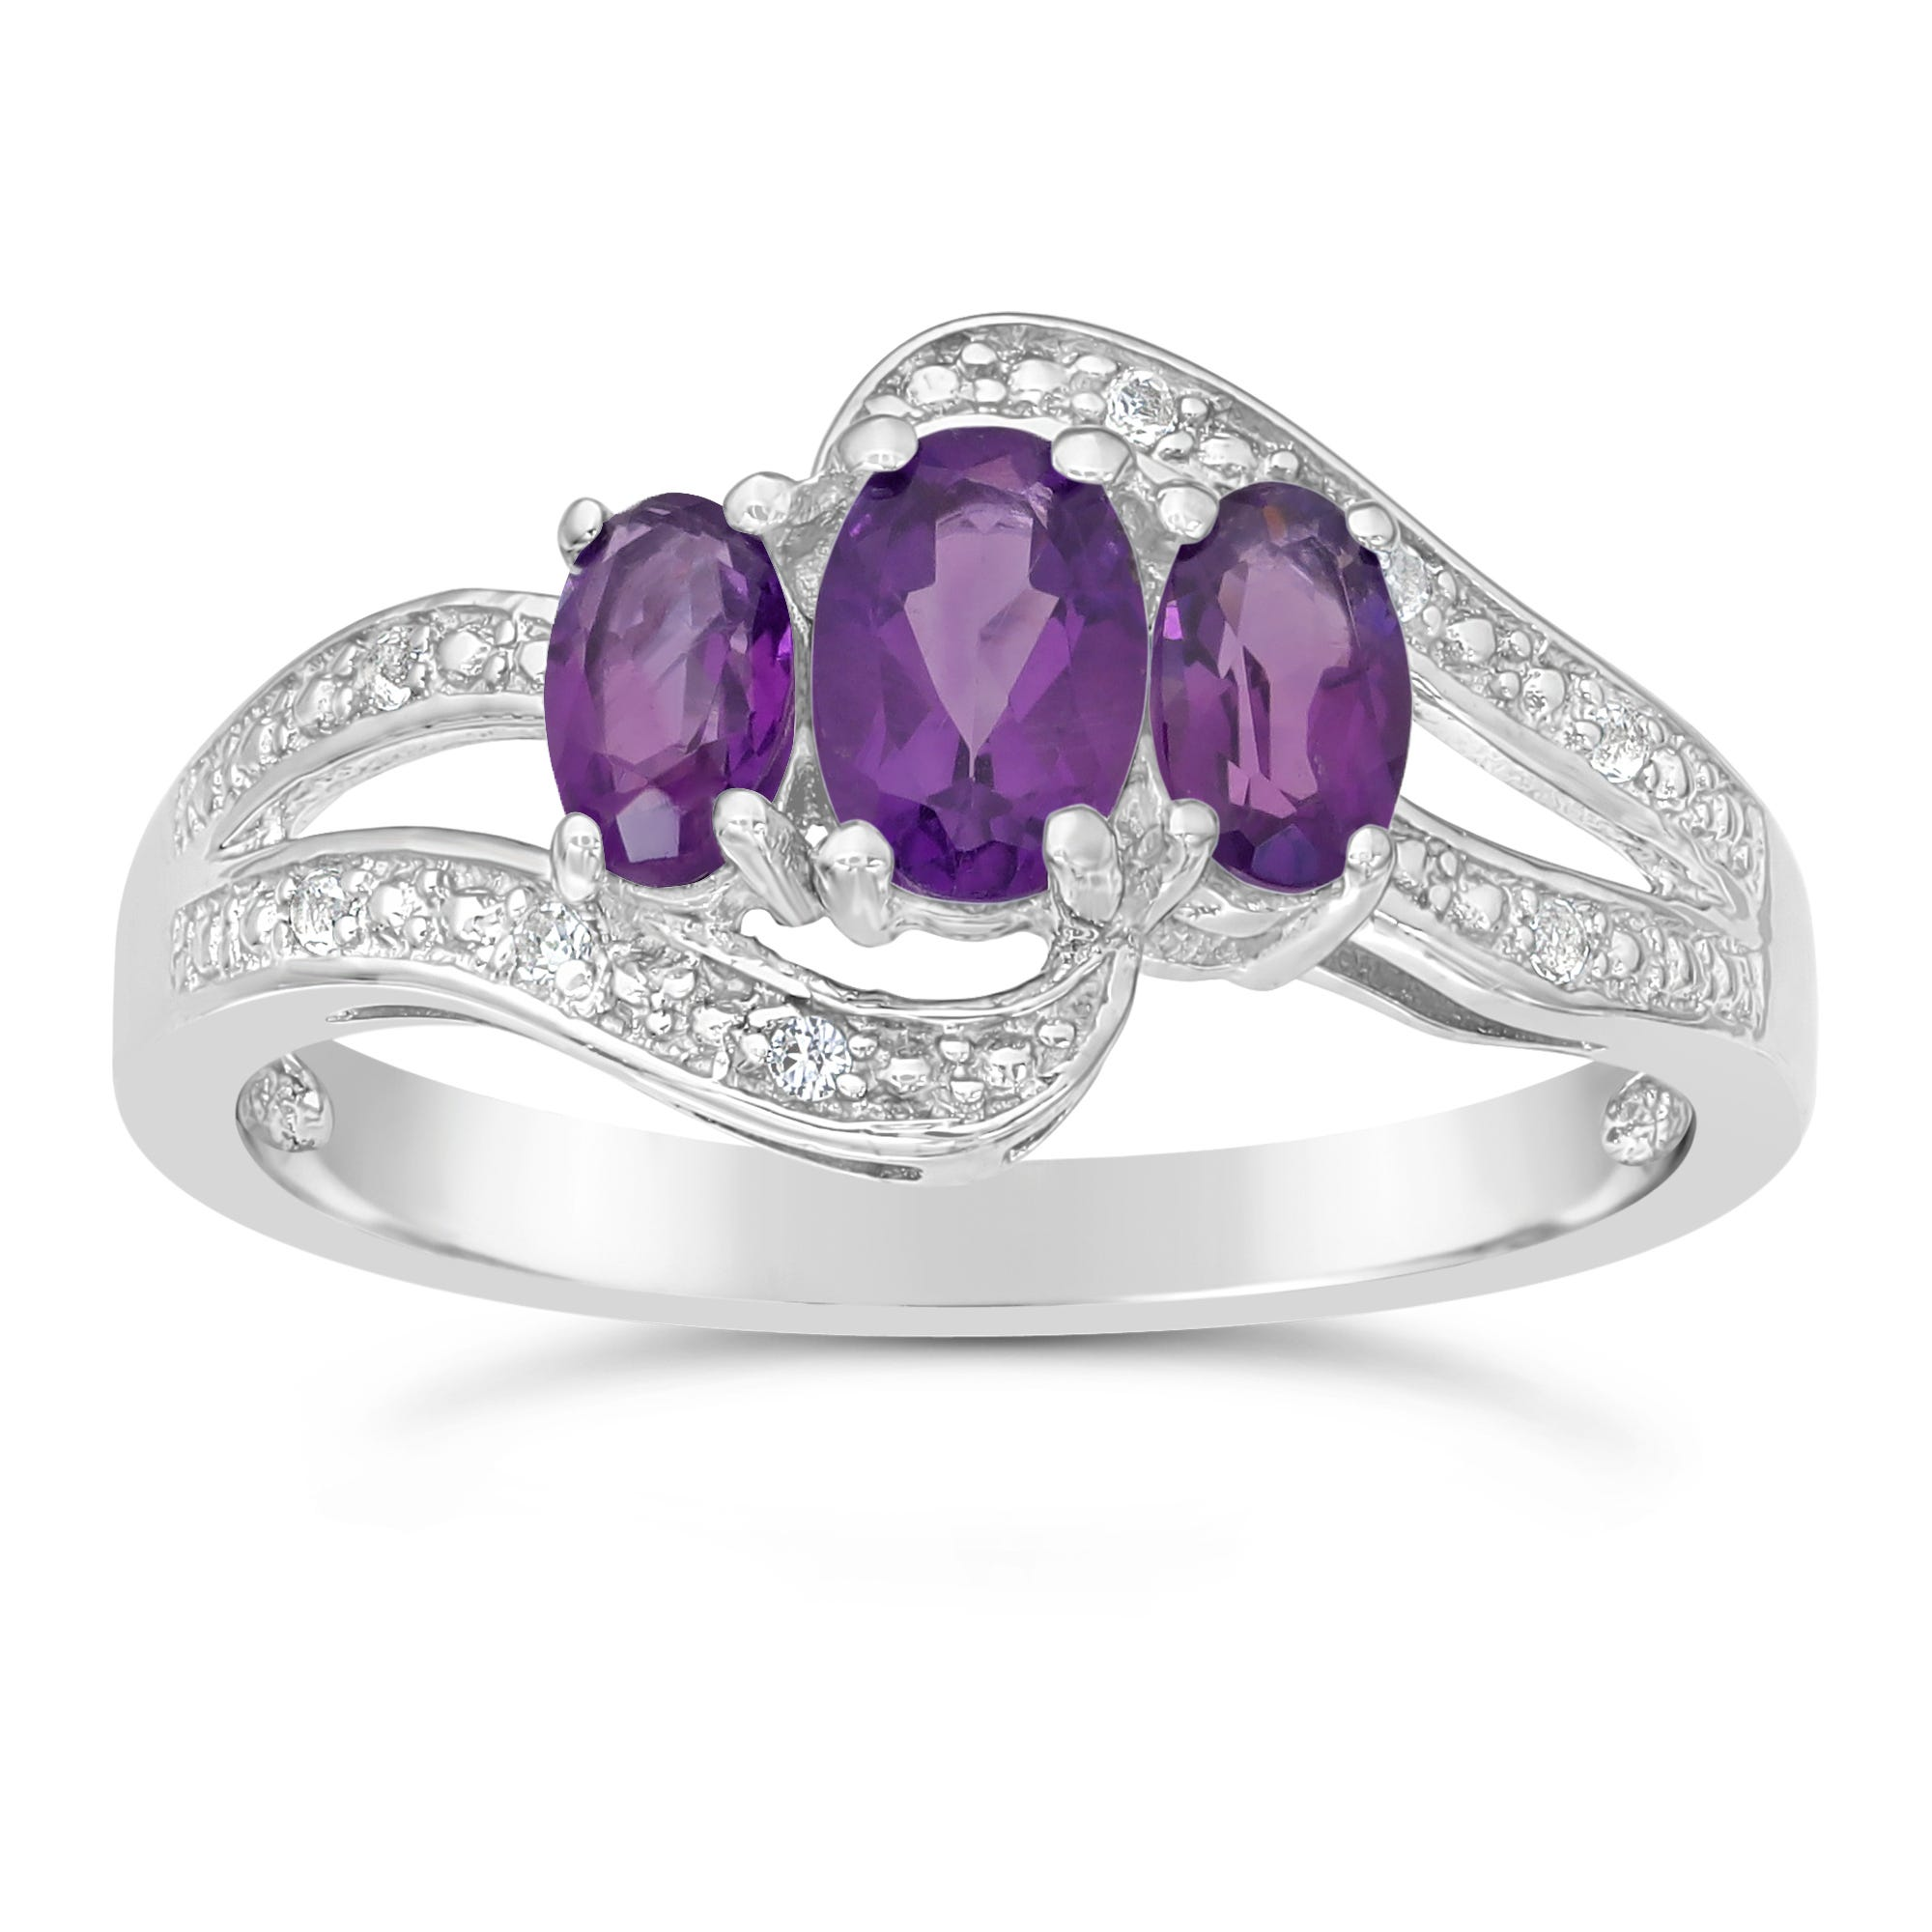 Triple Oval Amethyst and White Topaz Ring in Sterling Silver